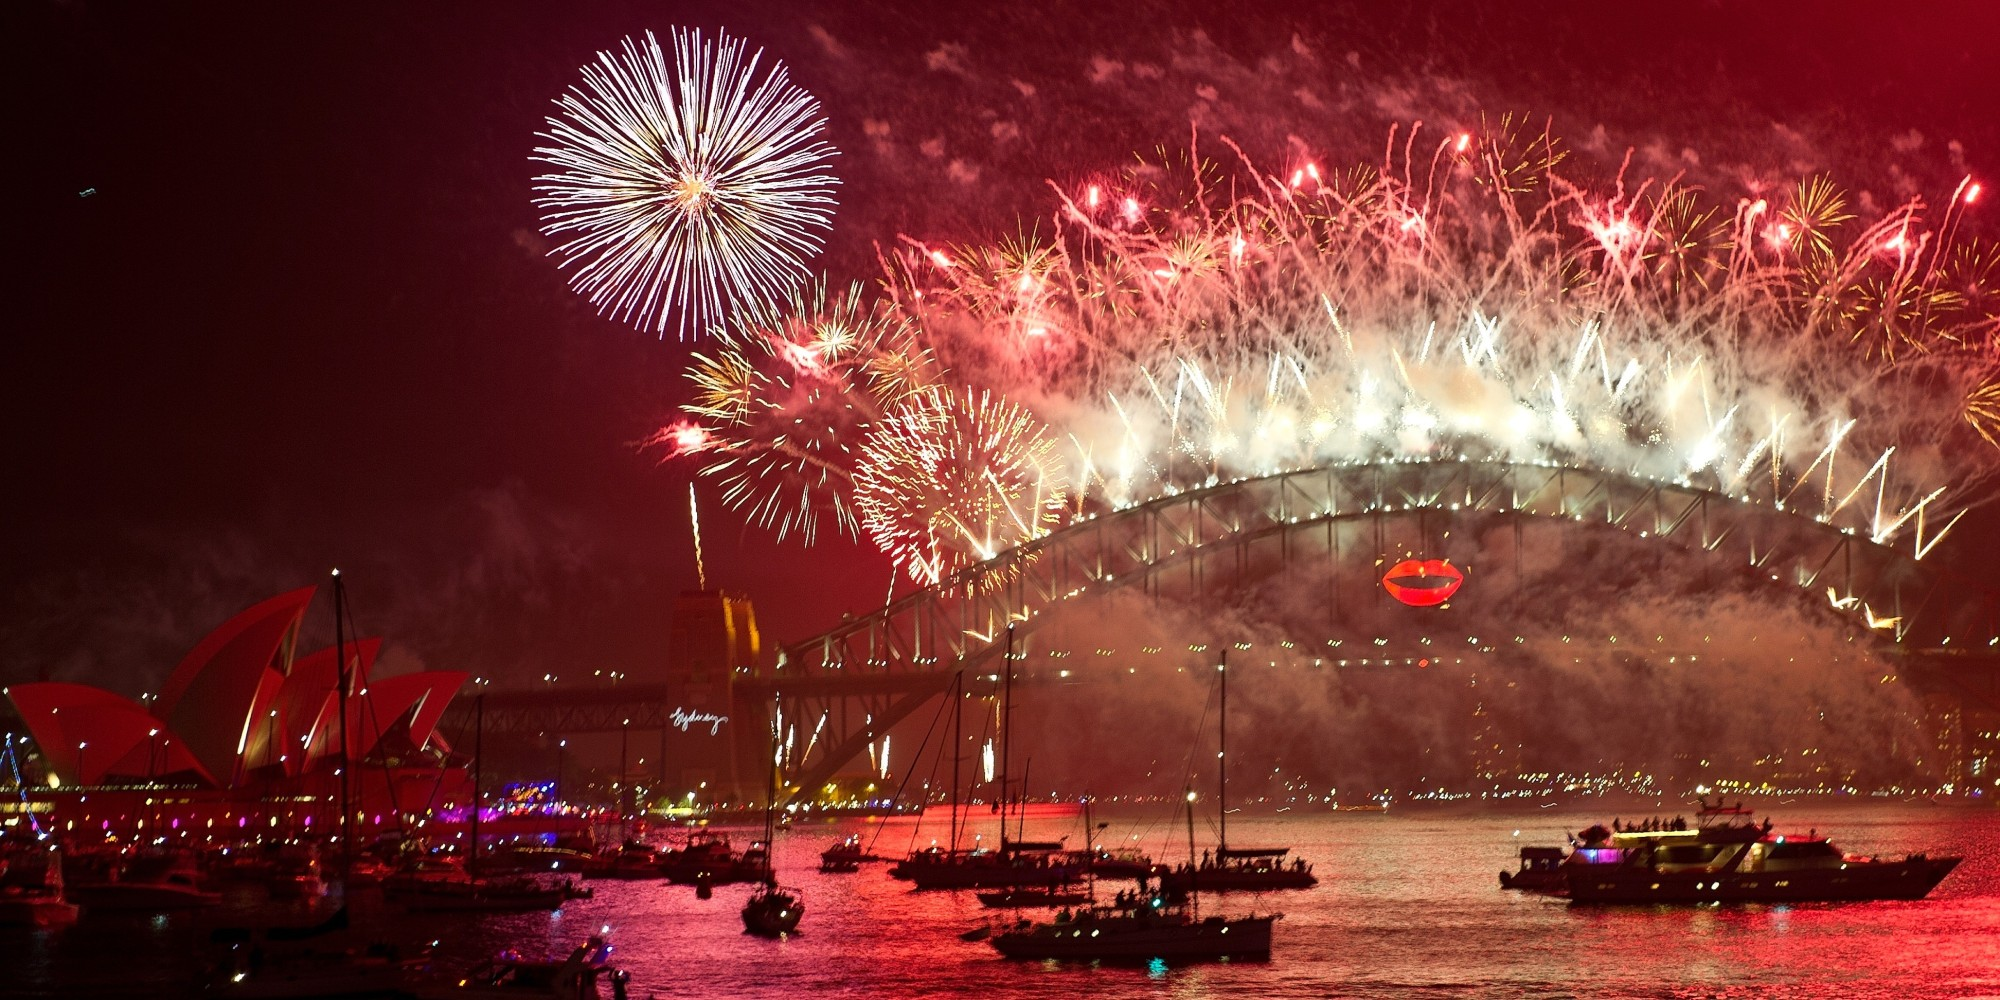 Best New Years Eve Fireworks: 15 Places To Watch The Sky Light Up (PHOTOS)